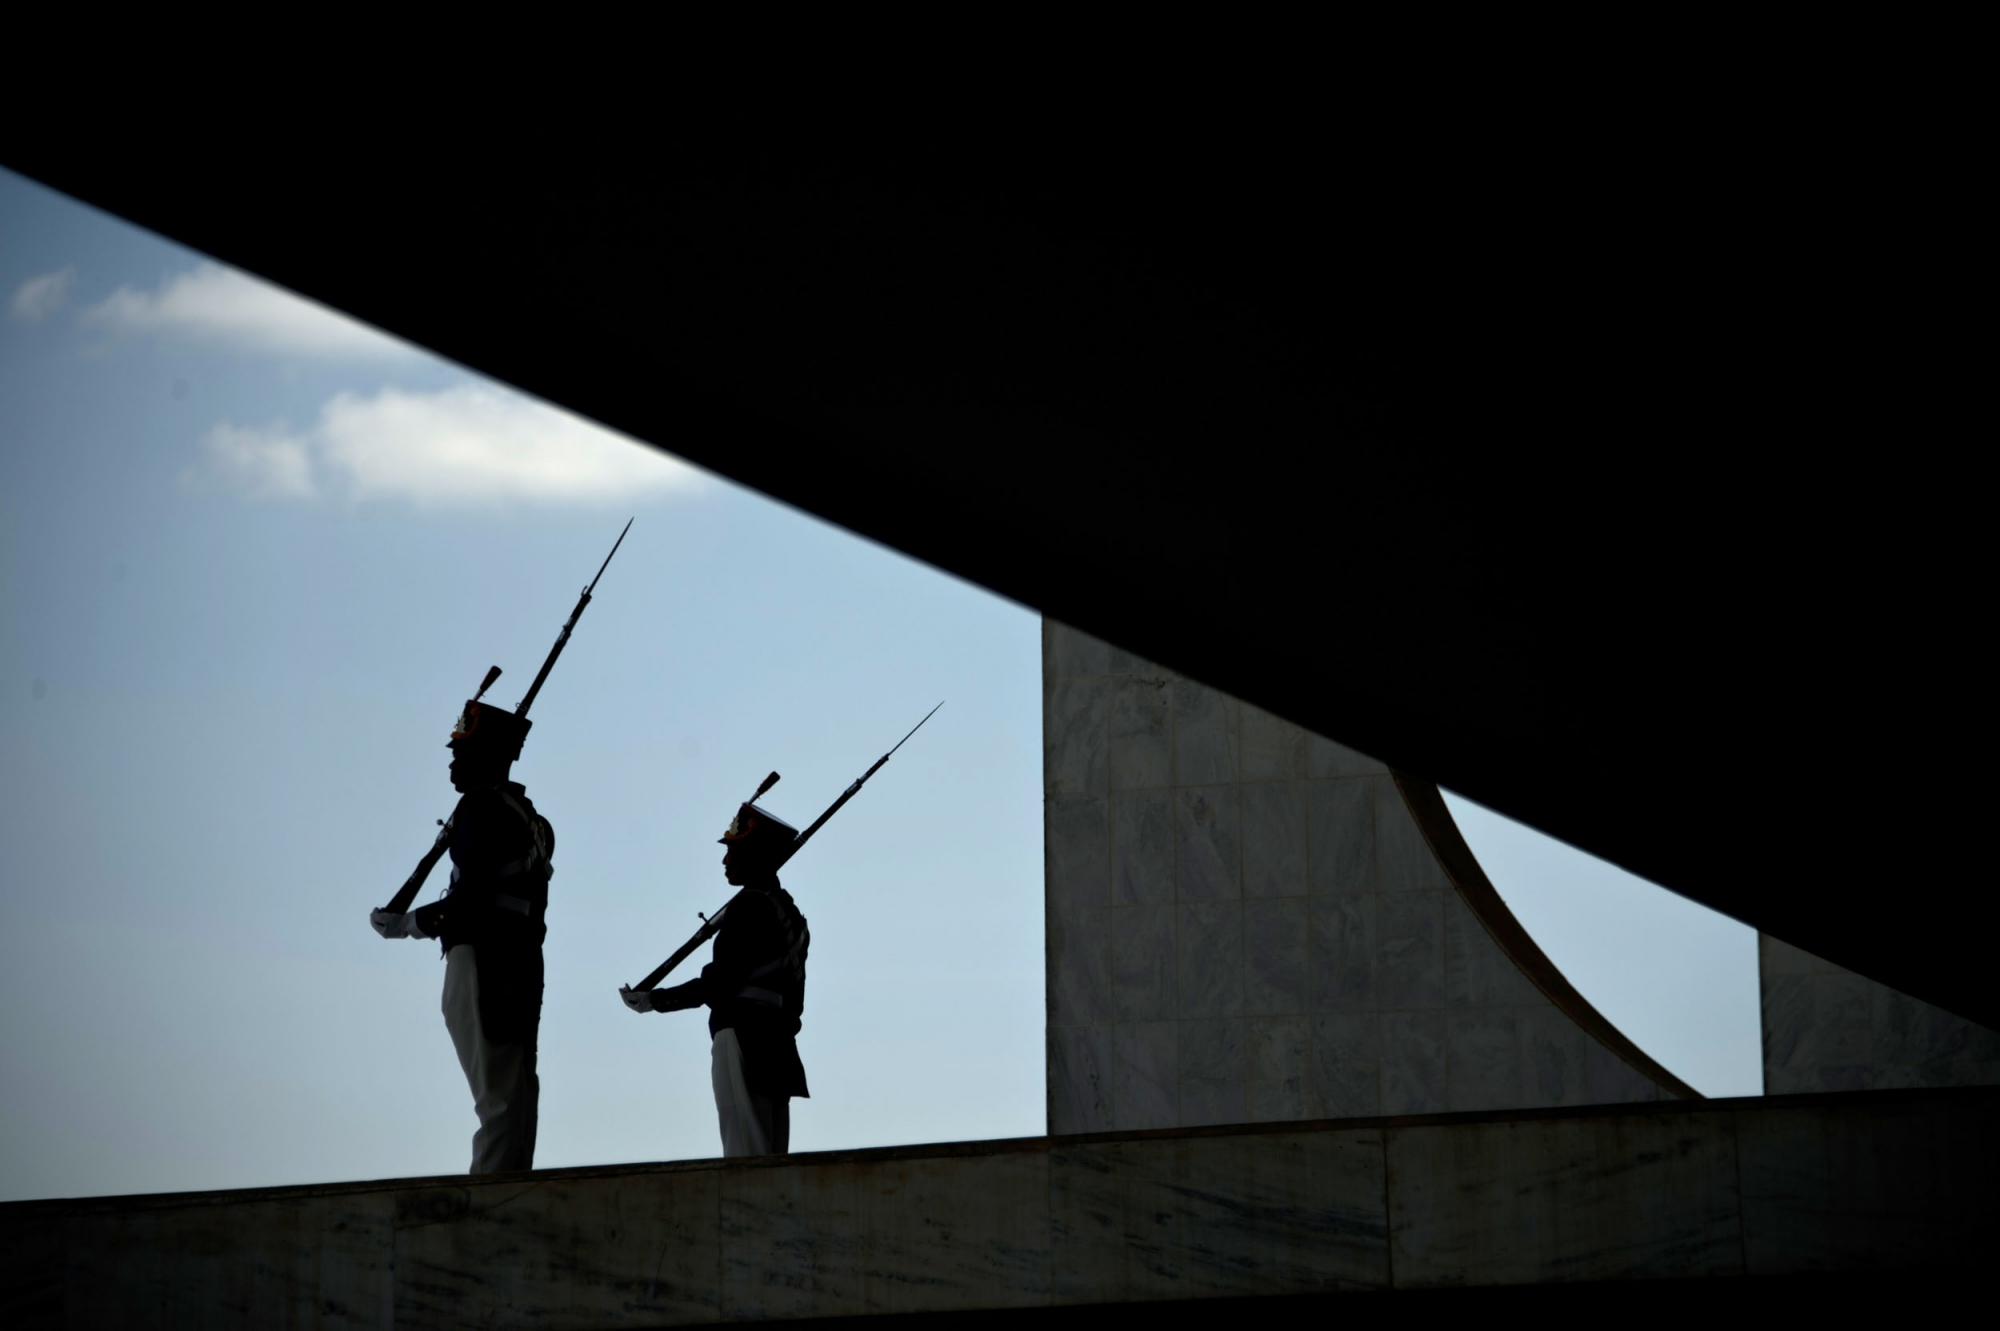 Presidential protocol guards are silhouted at the Planalto palace in Brasilia on May 11, 2016